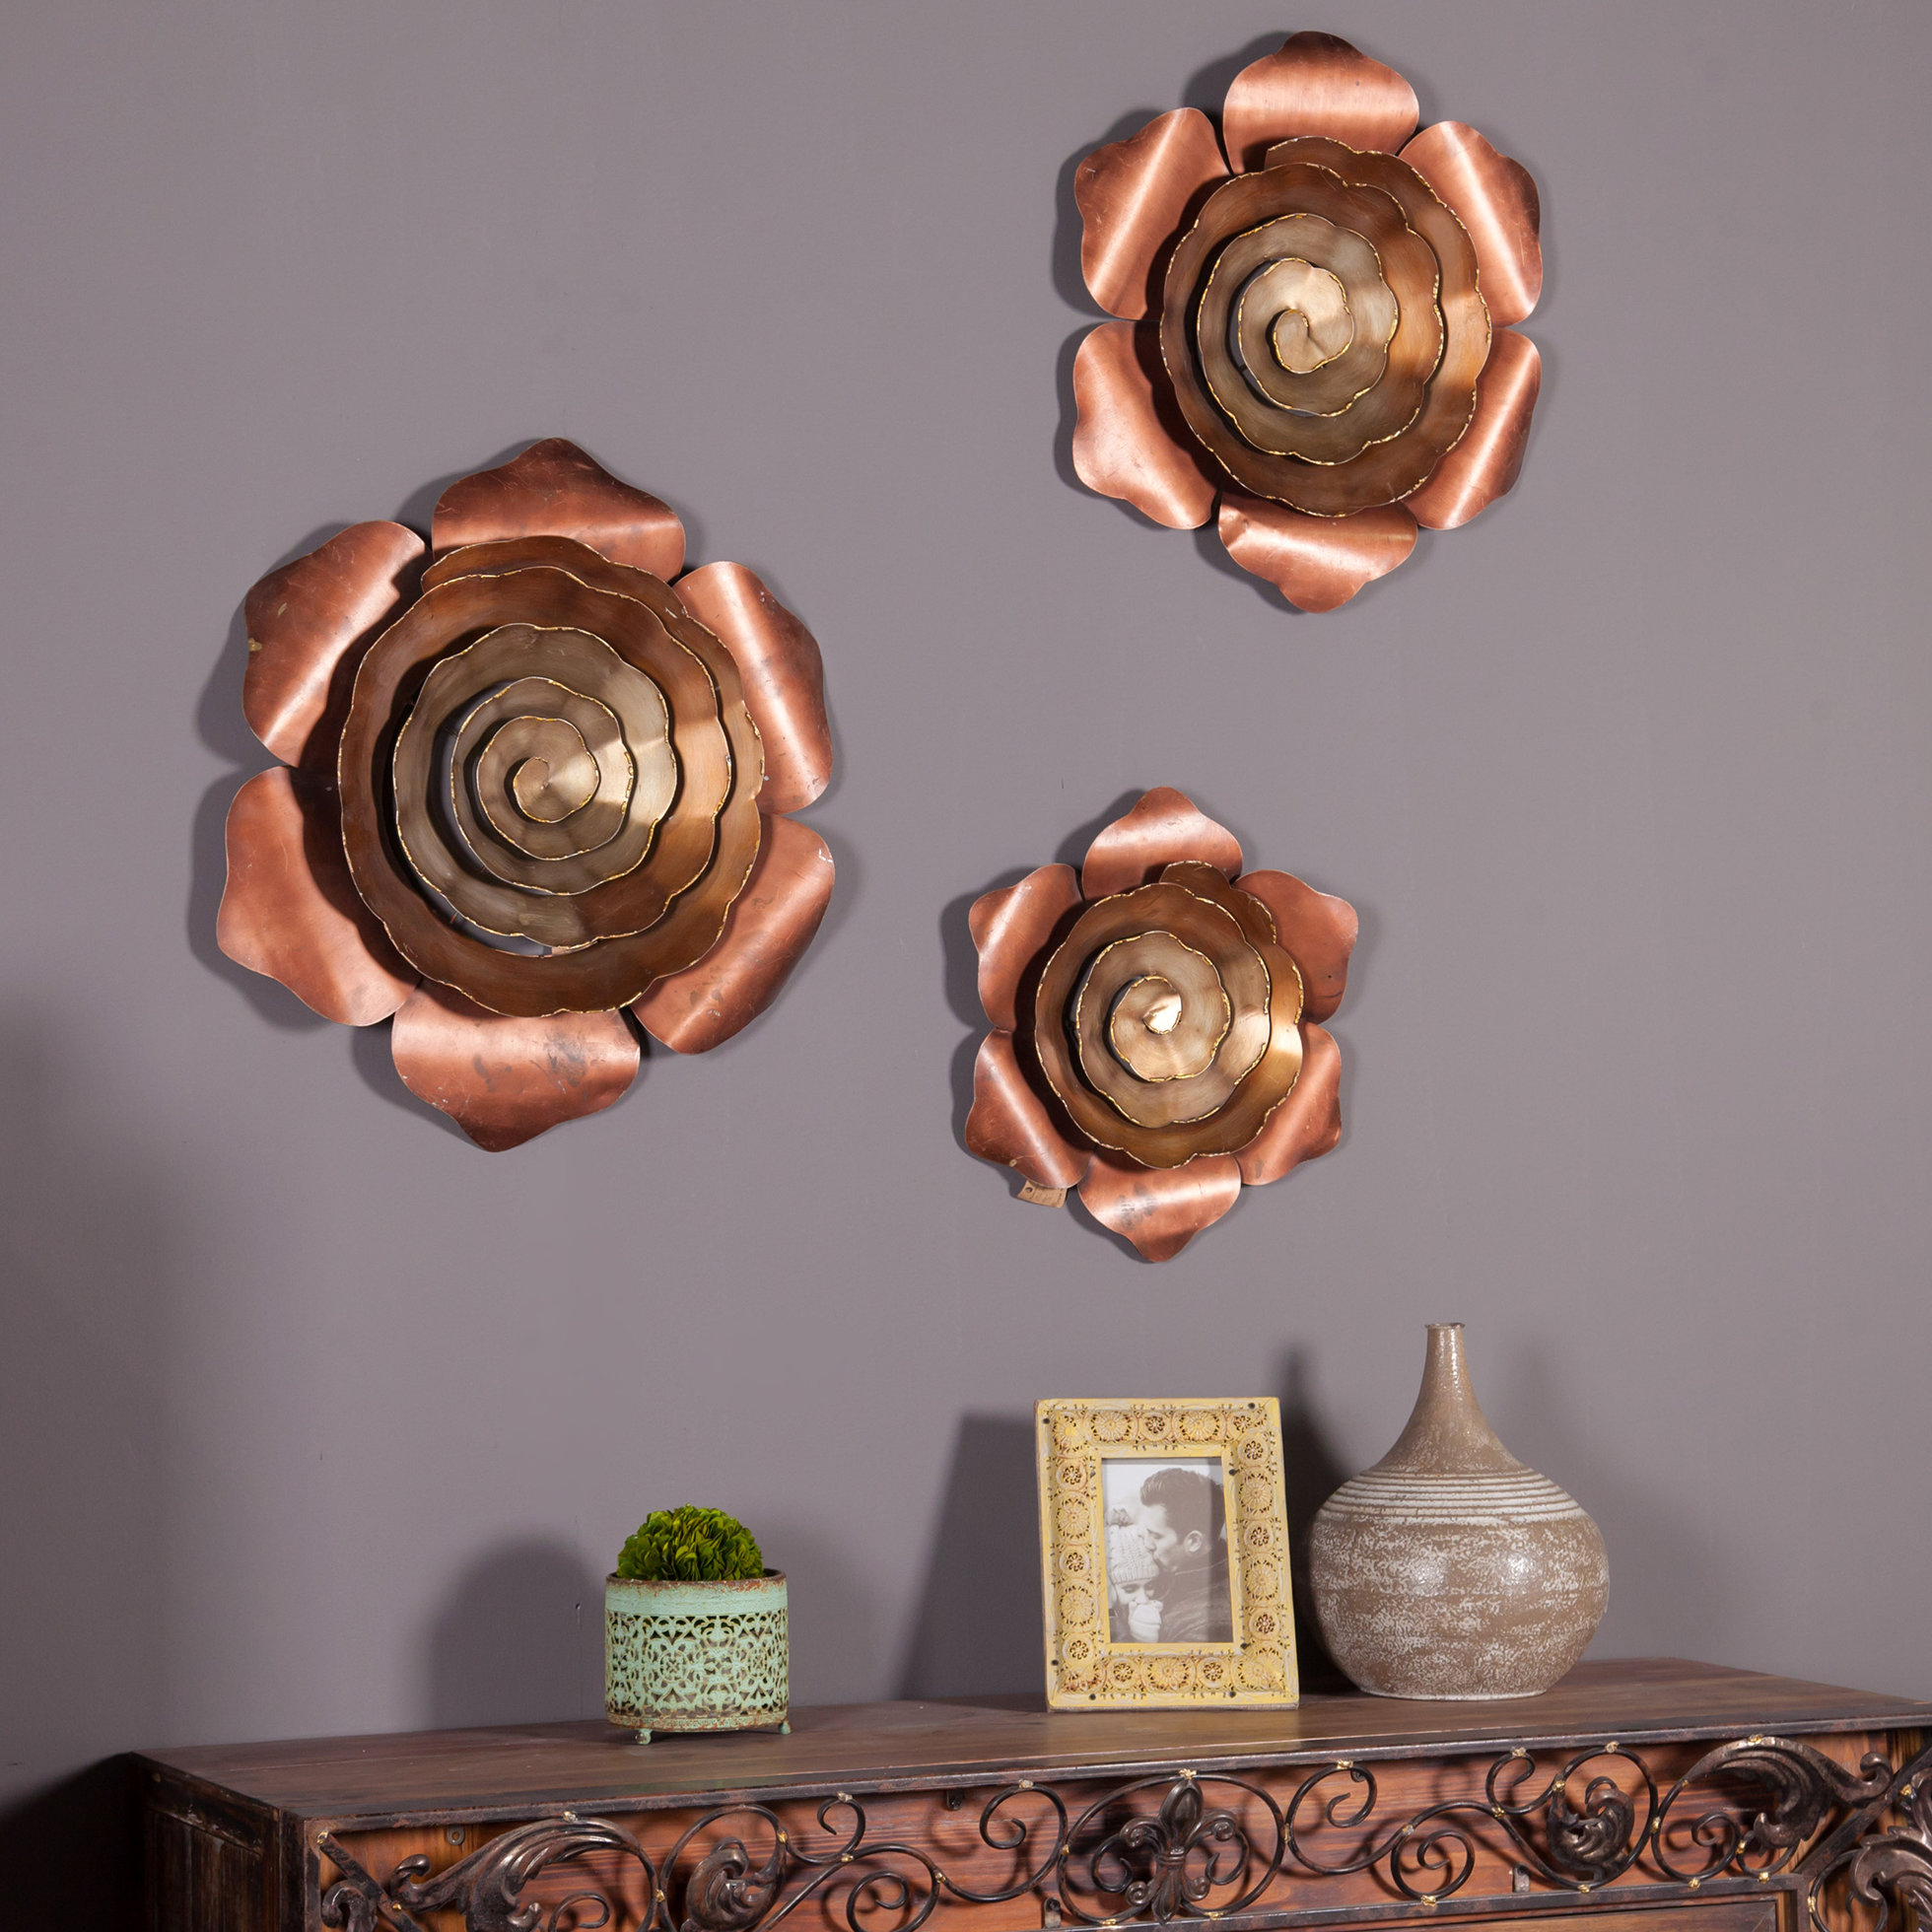 3 Piece Wall Decor Set | Wayfair In 3 Piece Magnolia Brown Panel Wall Decor Sets (View 7 of 30)